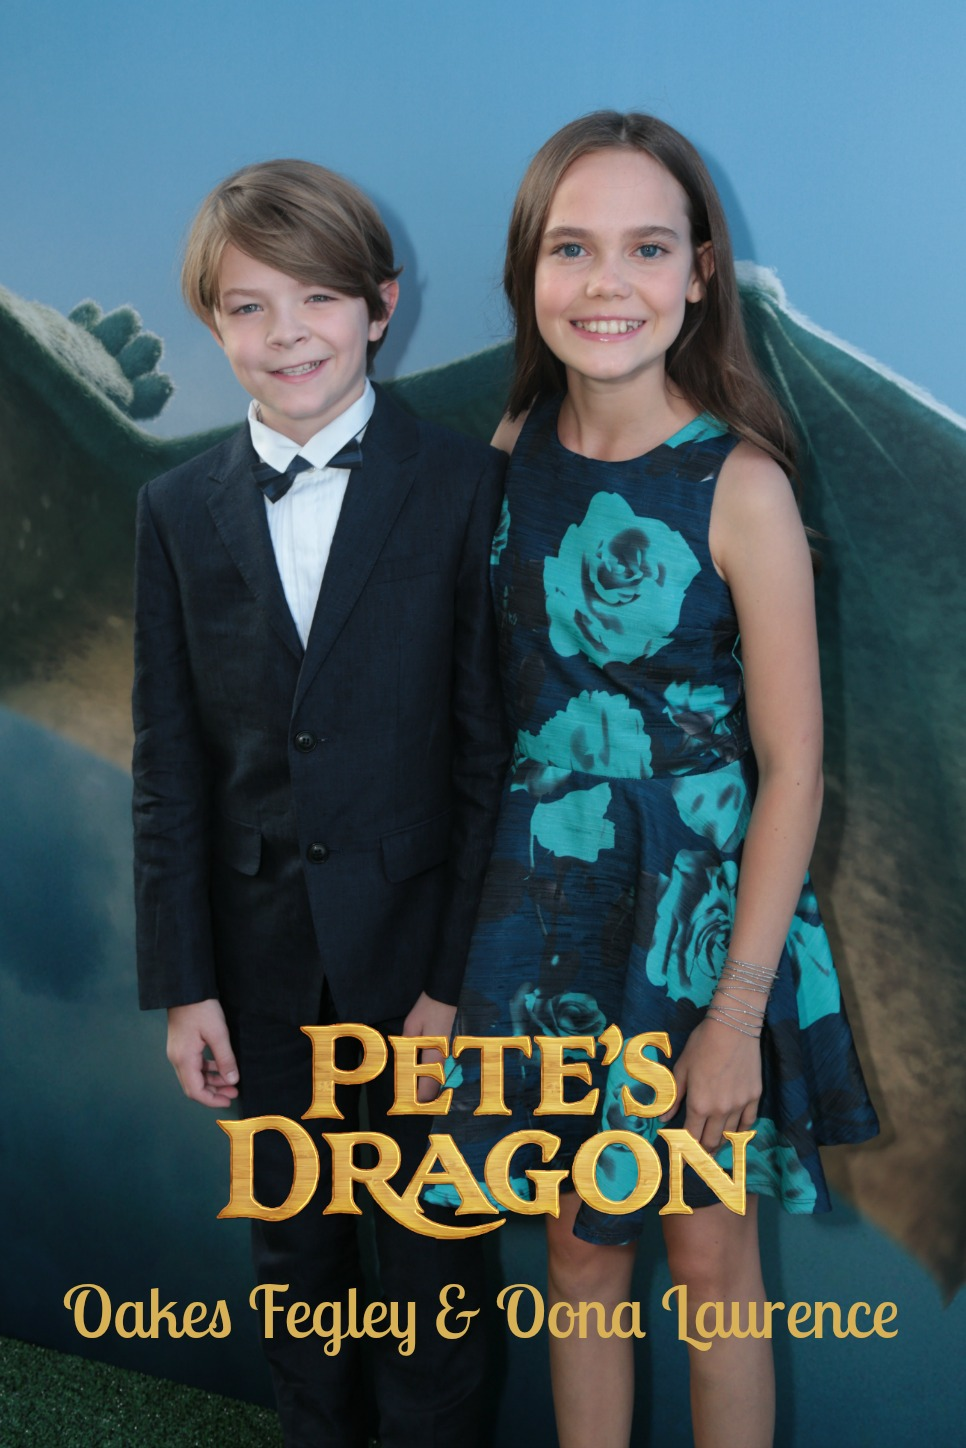 Ten Fun Facts from Pete's Dragon Stars Oakes Fegley and Oona Laurence!